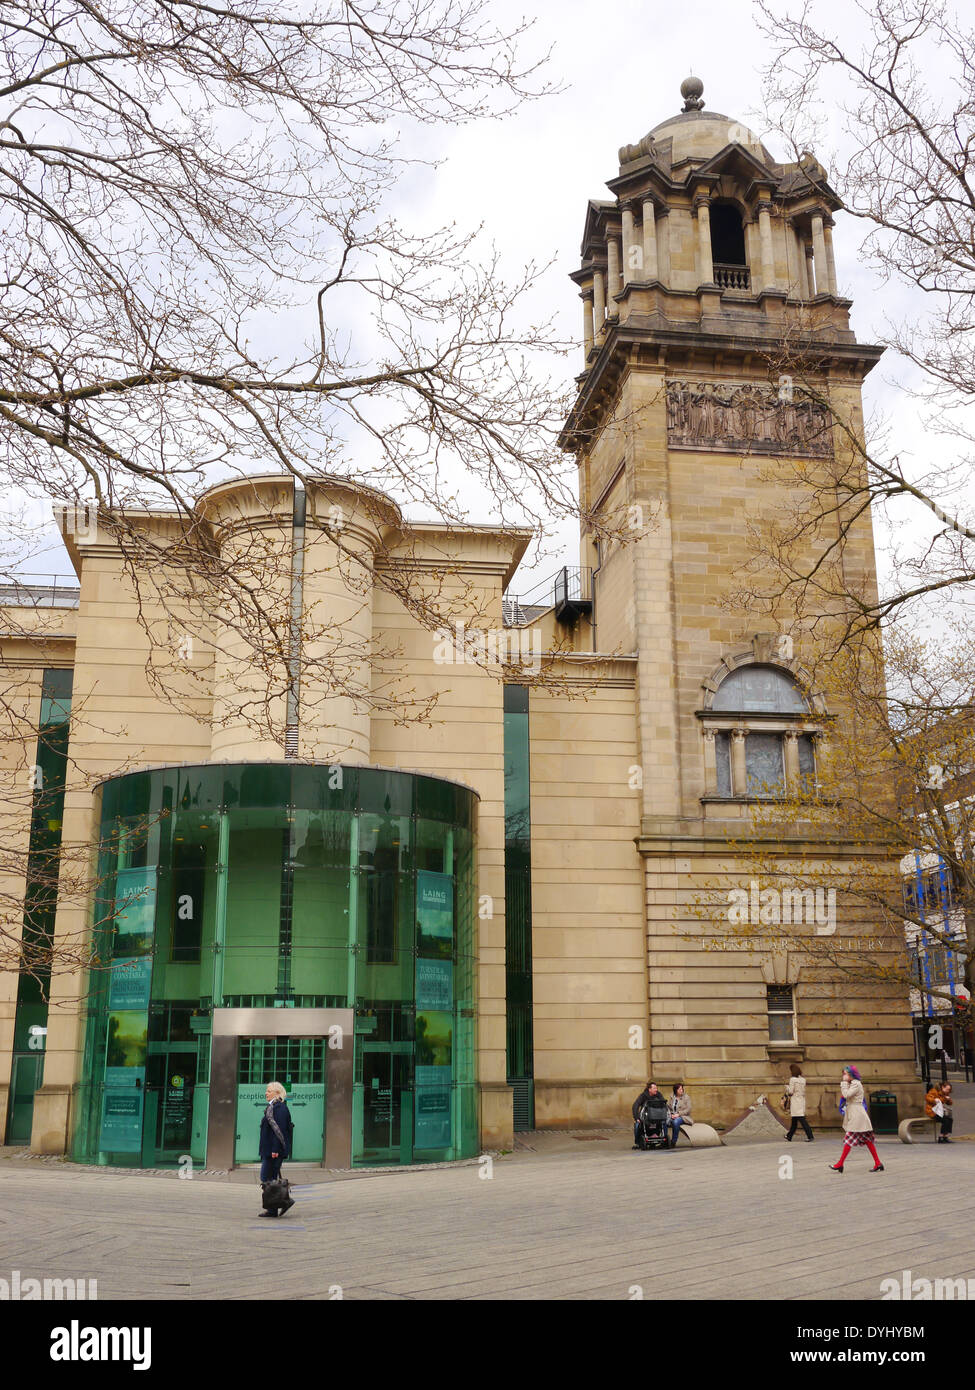 The architecturally and culturally significant, Laing art gallery, John Dobson Street, Newcastle upon Tyne, England, Stock Photo